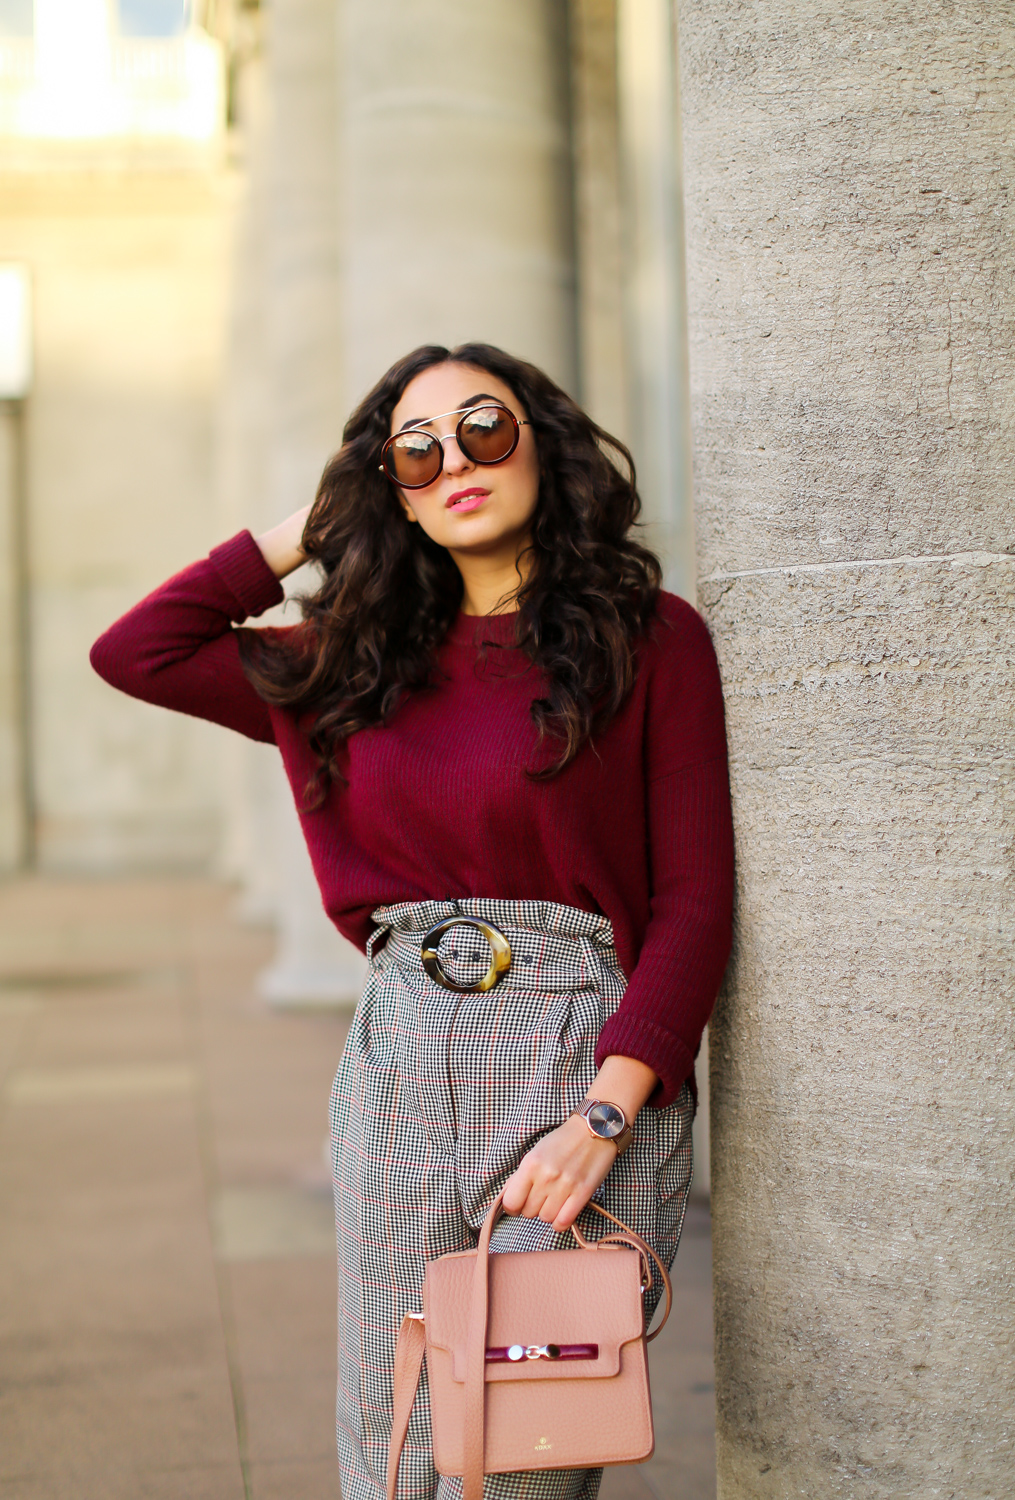 /home/samira/Desktop/Link to 2017/71_karohose/checkered pants/styling checkered pants paper back waist trausers mango winter outfit chic classic retro inspired herbst look streetstyle mode blog samieze berlin_.jpg /home/samira/Desktop/Link to 2017/71_karohose/checkered pants/styling checkered pants paper back waist trausers mango winter outfit chic classic retro inspired herbst look streetstyle mode blog samieze berlin_-2.jpg /home/samira/Desktop/Link to 2017/71_karohose/checkered pants/styling checkered pants paper back waist trausers mango winter outfit chic classic retro inspired herbst look streetstyle mode blog samieze berlin_-3.jpg /home/samira/Desktop/Link to 2017/71_karohose/checkered pants/styling checkered pants paper back waist trausers mango winter outfit chic classic retro inspired herbst look streetstyle mode blog samieze berlin_-4.jpg /home/samira/Desktop/Link to 2017/71_karohose/checkered pants/styling checkered pants paper back waist trausers mango winter outfit chic classic retro inspired herbst look streetstyle mode blog samieze berlin_-5.jpg /home/samira/Desktop/Link to 2017/71_karohose/checkered pants/styling checkered pants paper back waist trausers mango winter outfit chic classic retro inspired herbst look streetstyle mode blog samieze berlin_-6.jpg /home/samira/Desktop/Link to 2017/71_karohose/checkered pants/styling checkered pants paper back waist trausers mango winter outfit chic classic retro inspired herbst look streetstyle mode blog samieze berlin_-7.jpg /home/samira/Desktop/Link to 2017/71_karohose/checkered pants/styling checkered pants paper back waist trausers mango winter outfit chic classic retro inspired herbst look streetstyle mode blog samieze berlin_-8.jpg /home/samira/Desktop/Link to 2017/71_karohose/checkered pants/styling checkered pants paper back waist trausers mango winter outfit chic classic retro inspired herbst look streetstyle mode blog samieze berlin_-9.jpg /home/samira/Desktop/Link to 2017/71_karohose/checkered pa